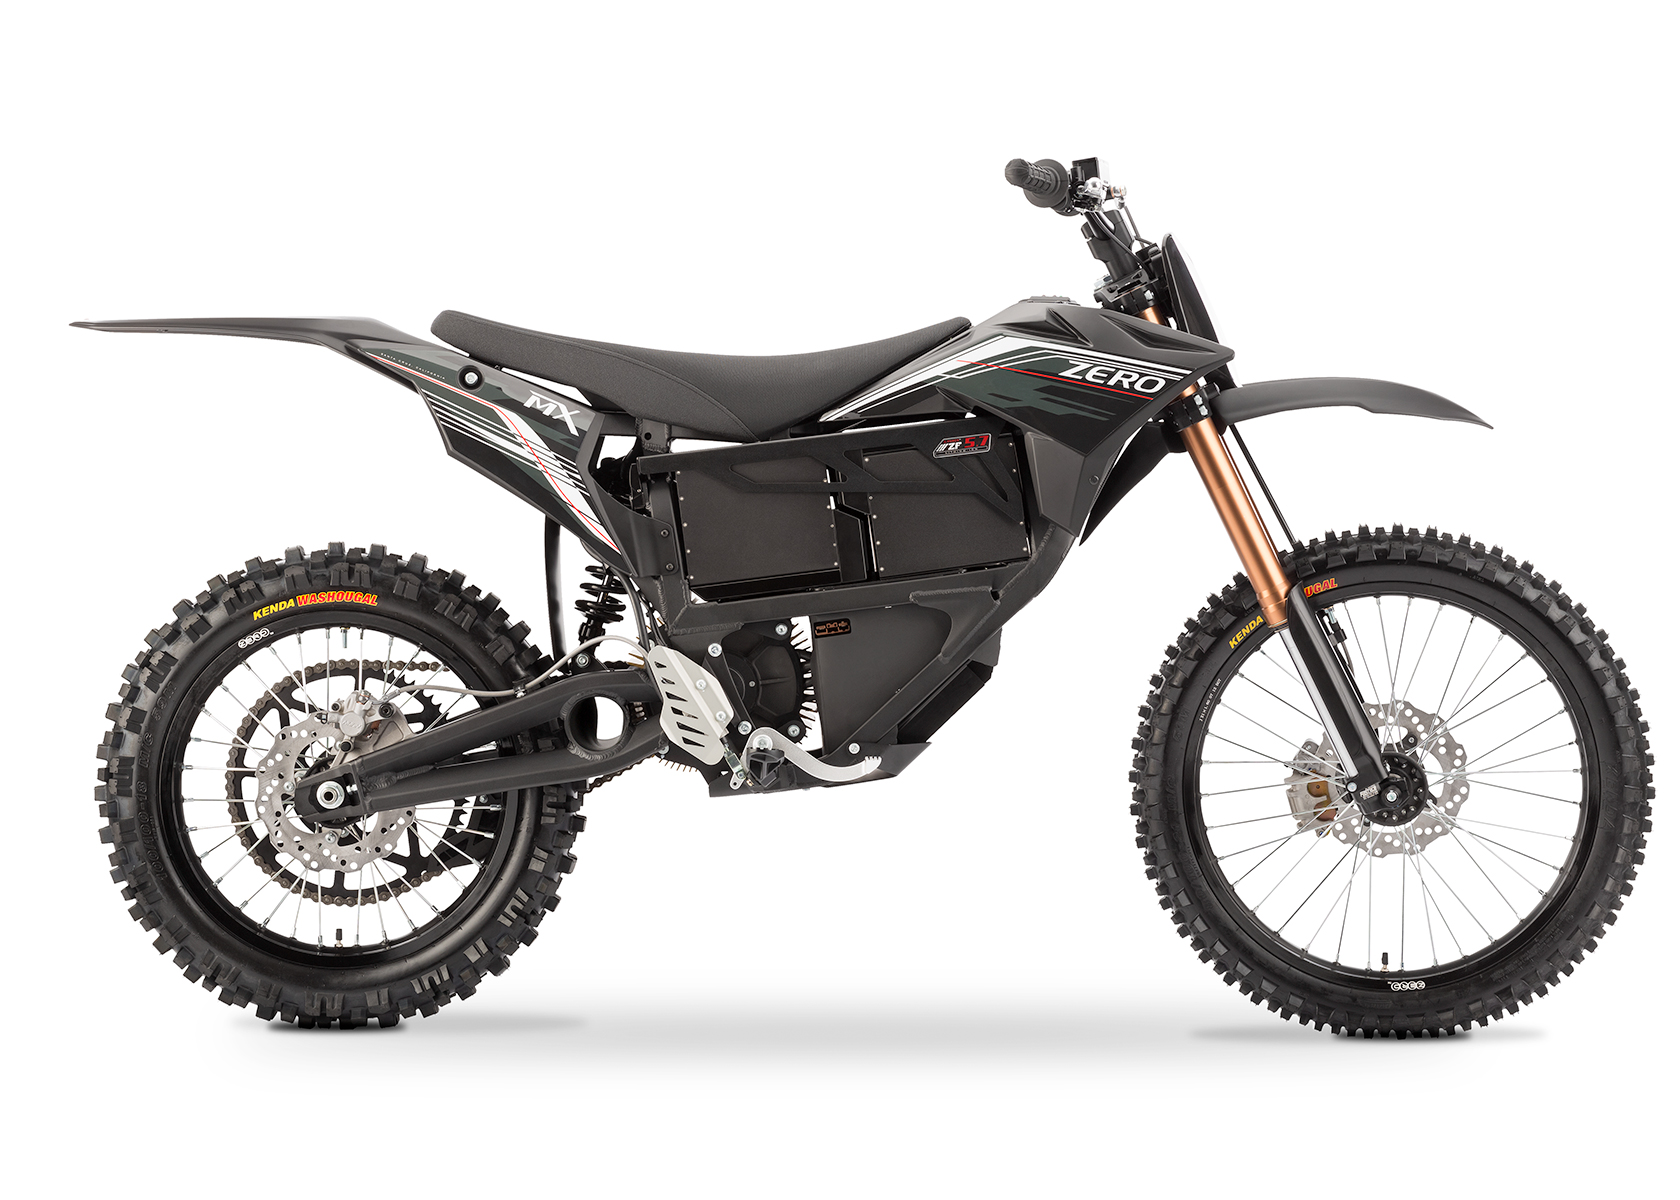 '.2013 Zero MX Electric Motorcycle: Black Profile Right, White Background.'